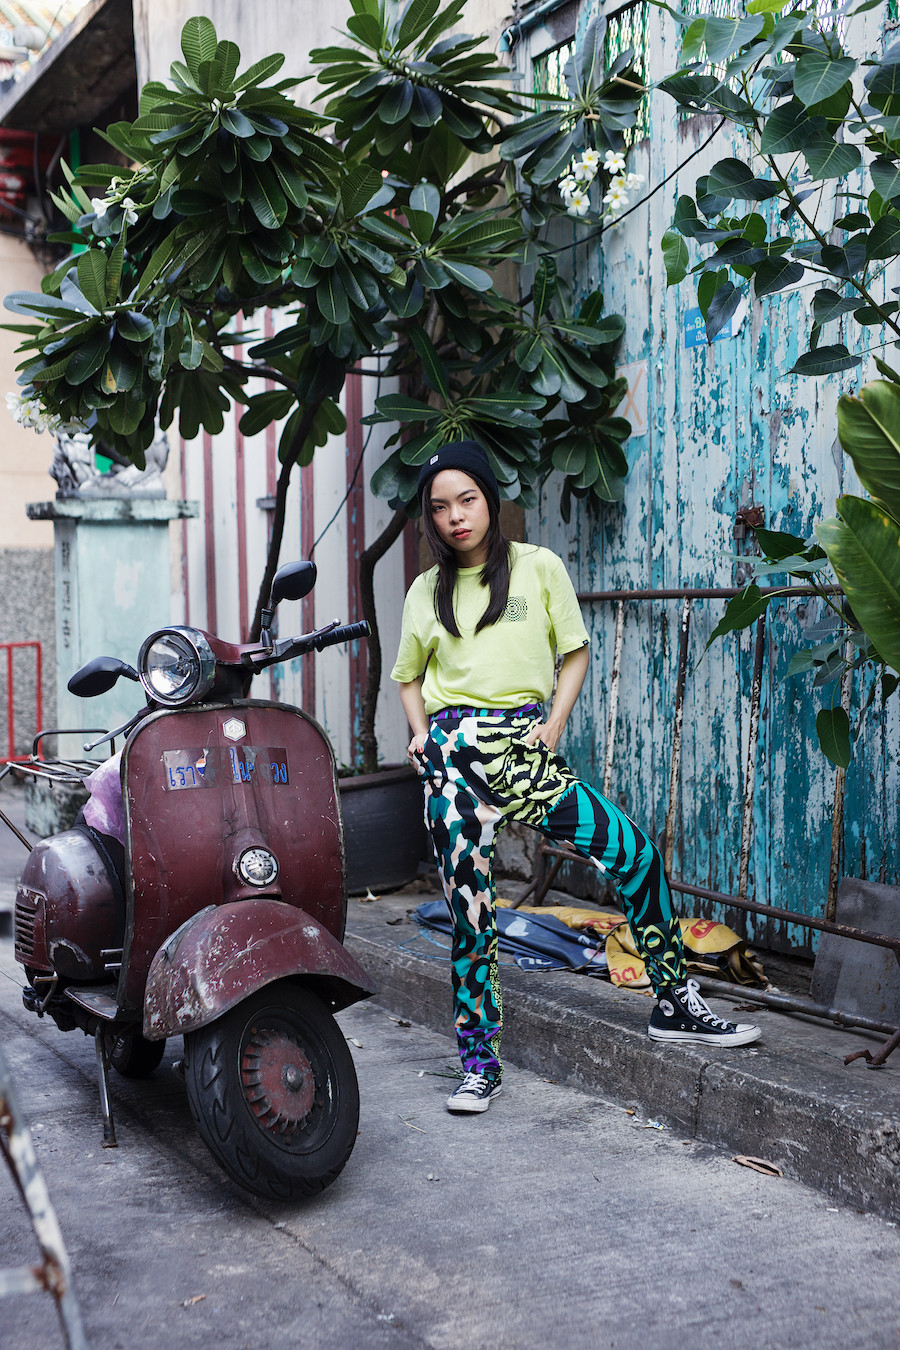 Pear is a 22 year old female fashion & design student at Bangkok's Silpakorn University Decorative Arts department. This photo shows pear dresses in a contemporary slouchy street wear style with 80's and 90's skateboarder influences. She is wearing blue and aqua multi pattern loose trousers and a lime green t shirt with a skateboard style logo along with Converse Chuck Taylor baseball boots. Pear is pictured next to a rusting old motor scooter and large wooden door with peeling blue paint creating a beautiful patina. The image is framed nicely with large exotic trees growing from earthenware pots outside an old temple in bankbook's Chinatown